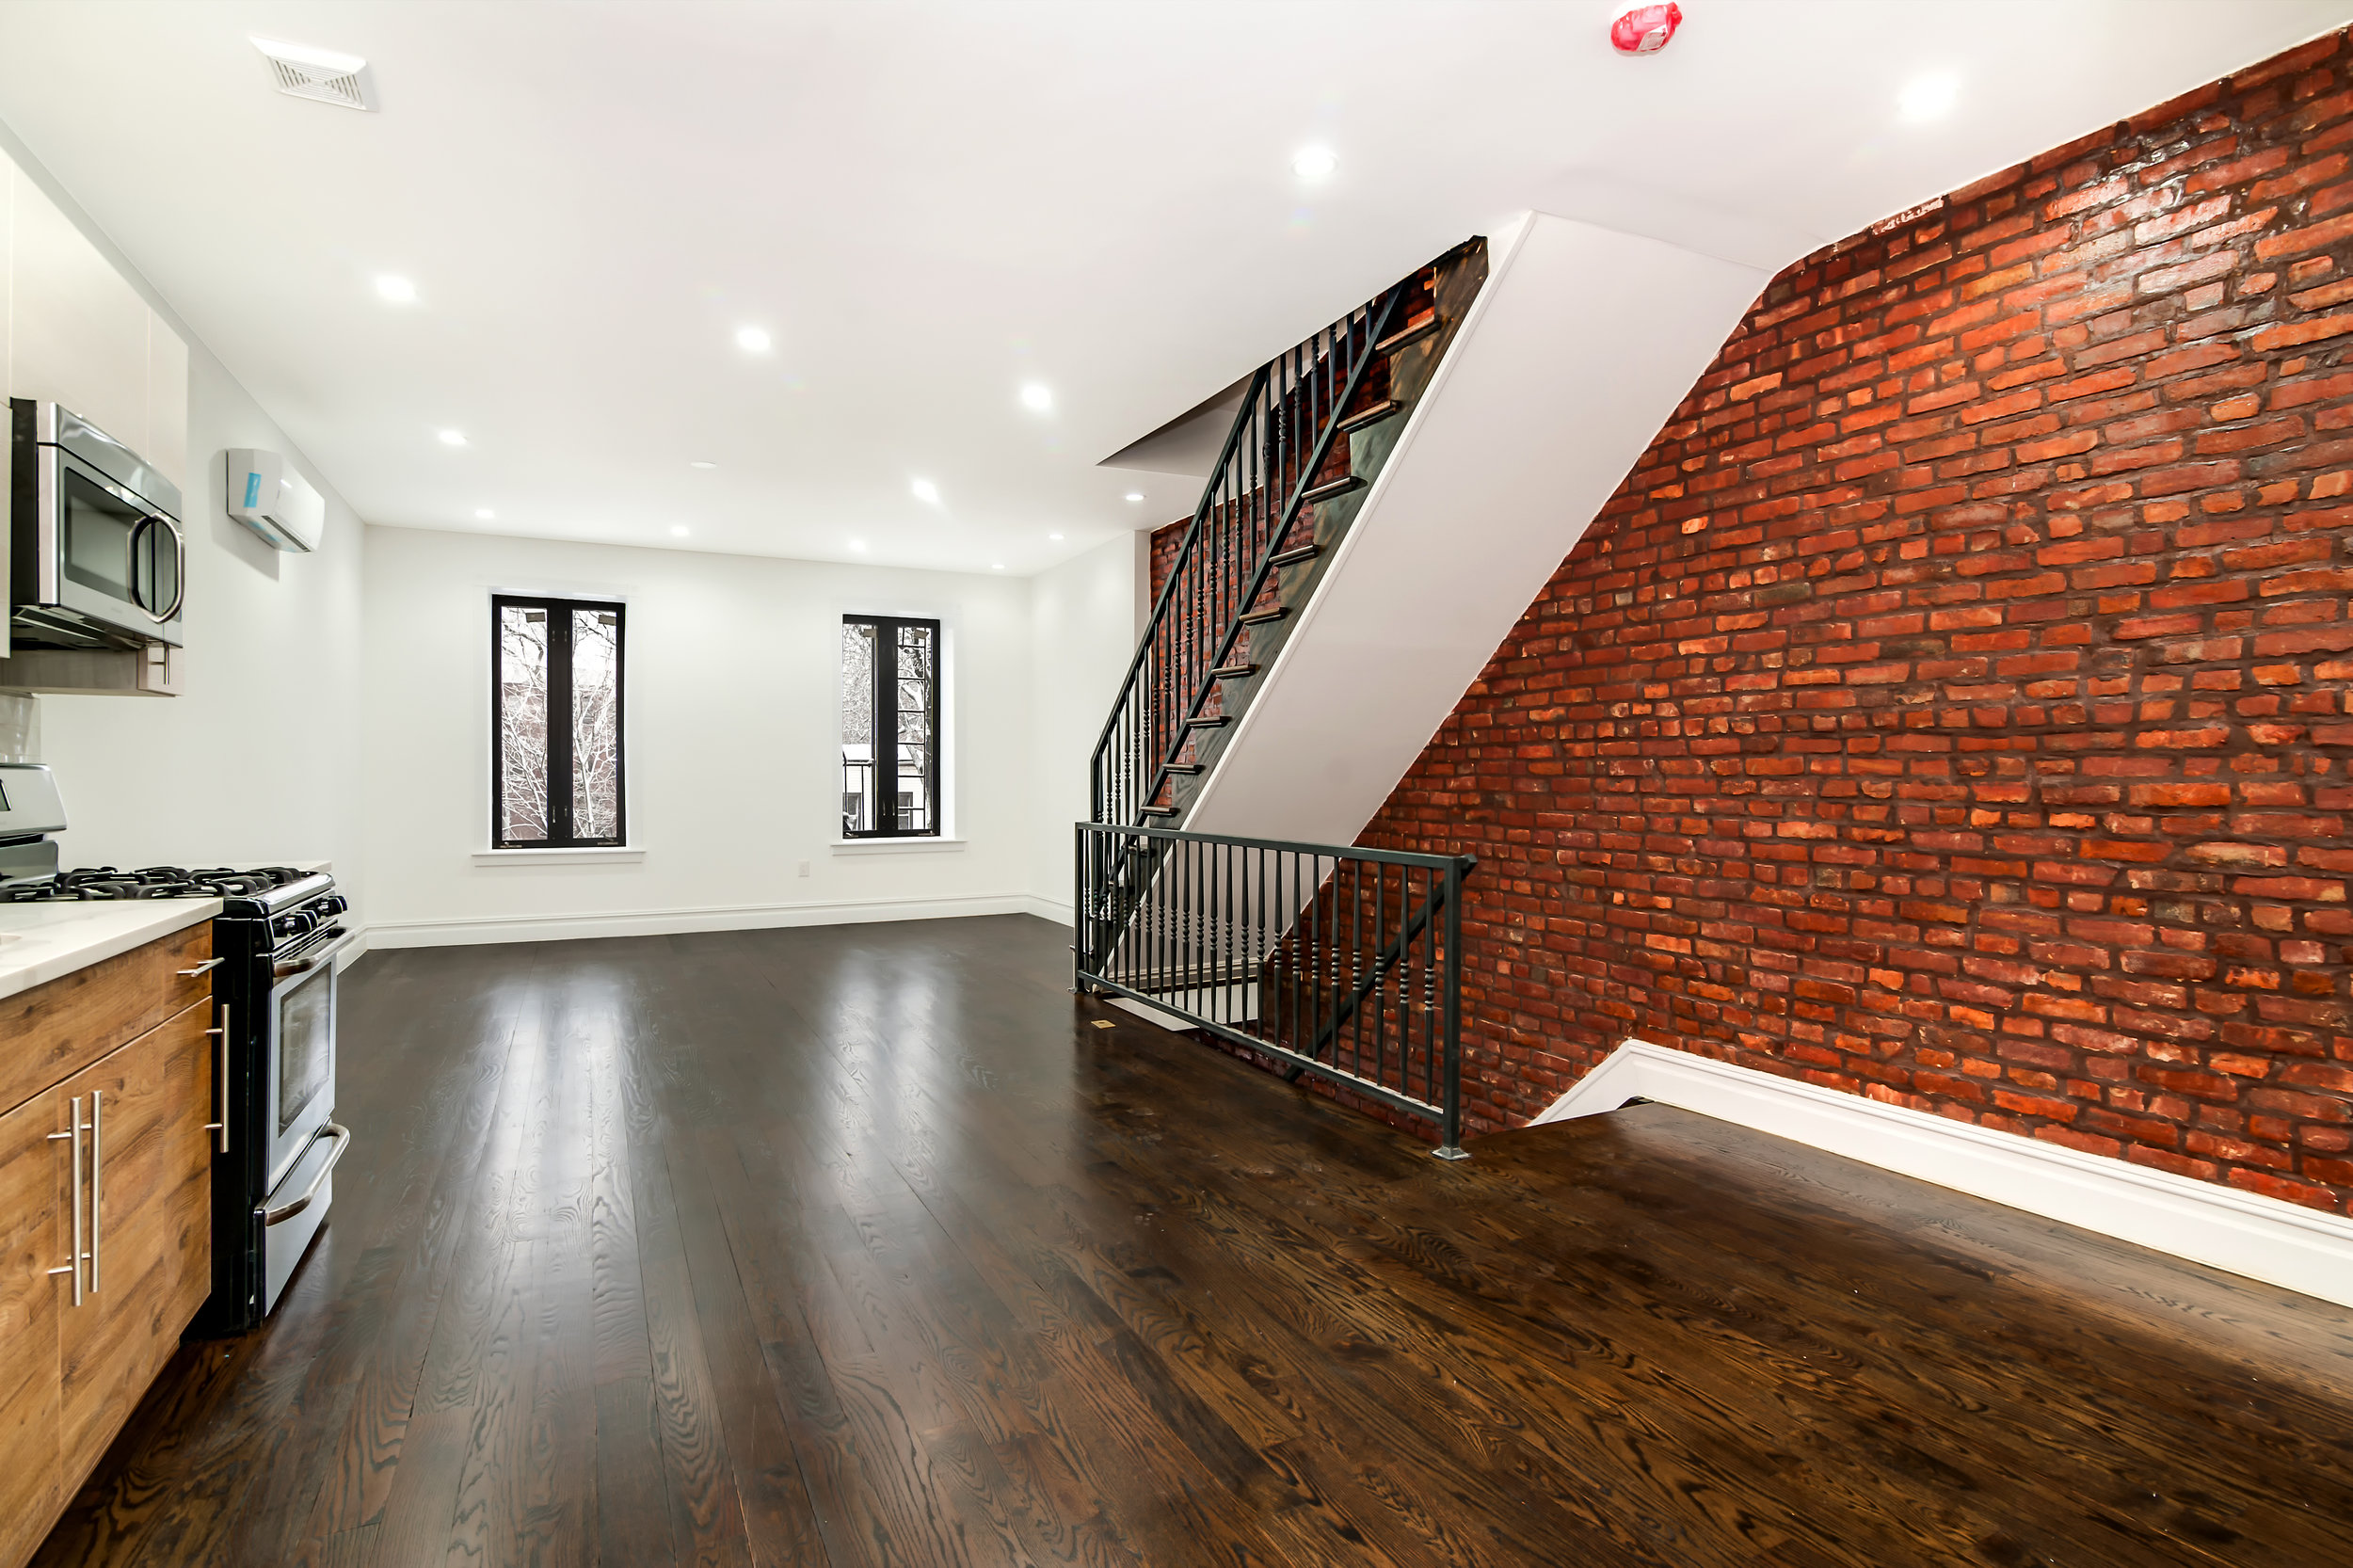 $3,600/month 3.0 BD | 2.0 BA | 1,380 SF  Bedford Stuyvesant  629A Madison Street